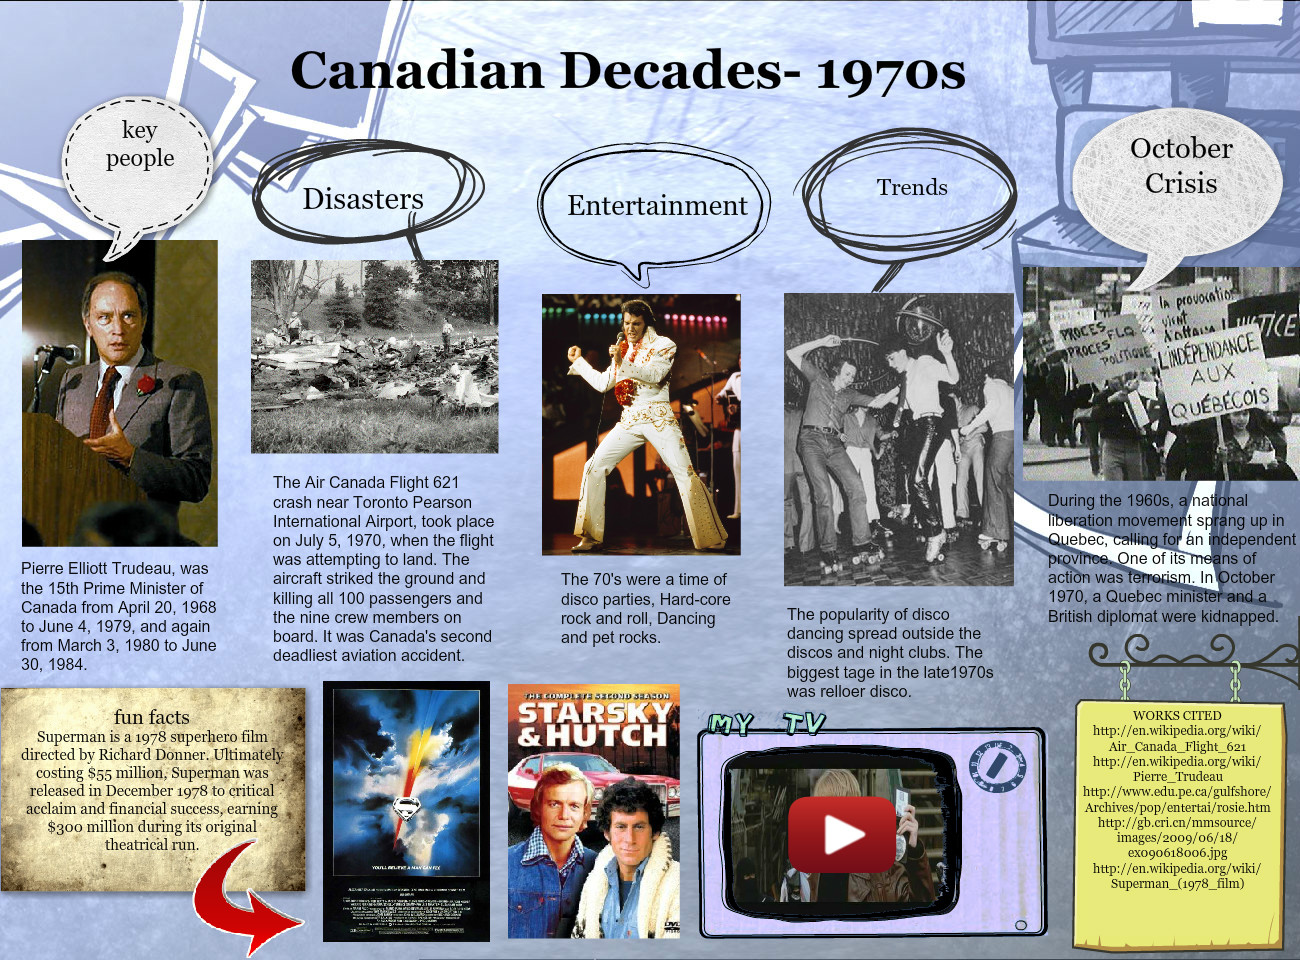 Canadian decade-1970s